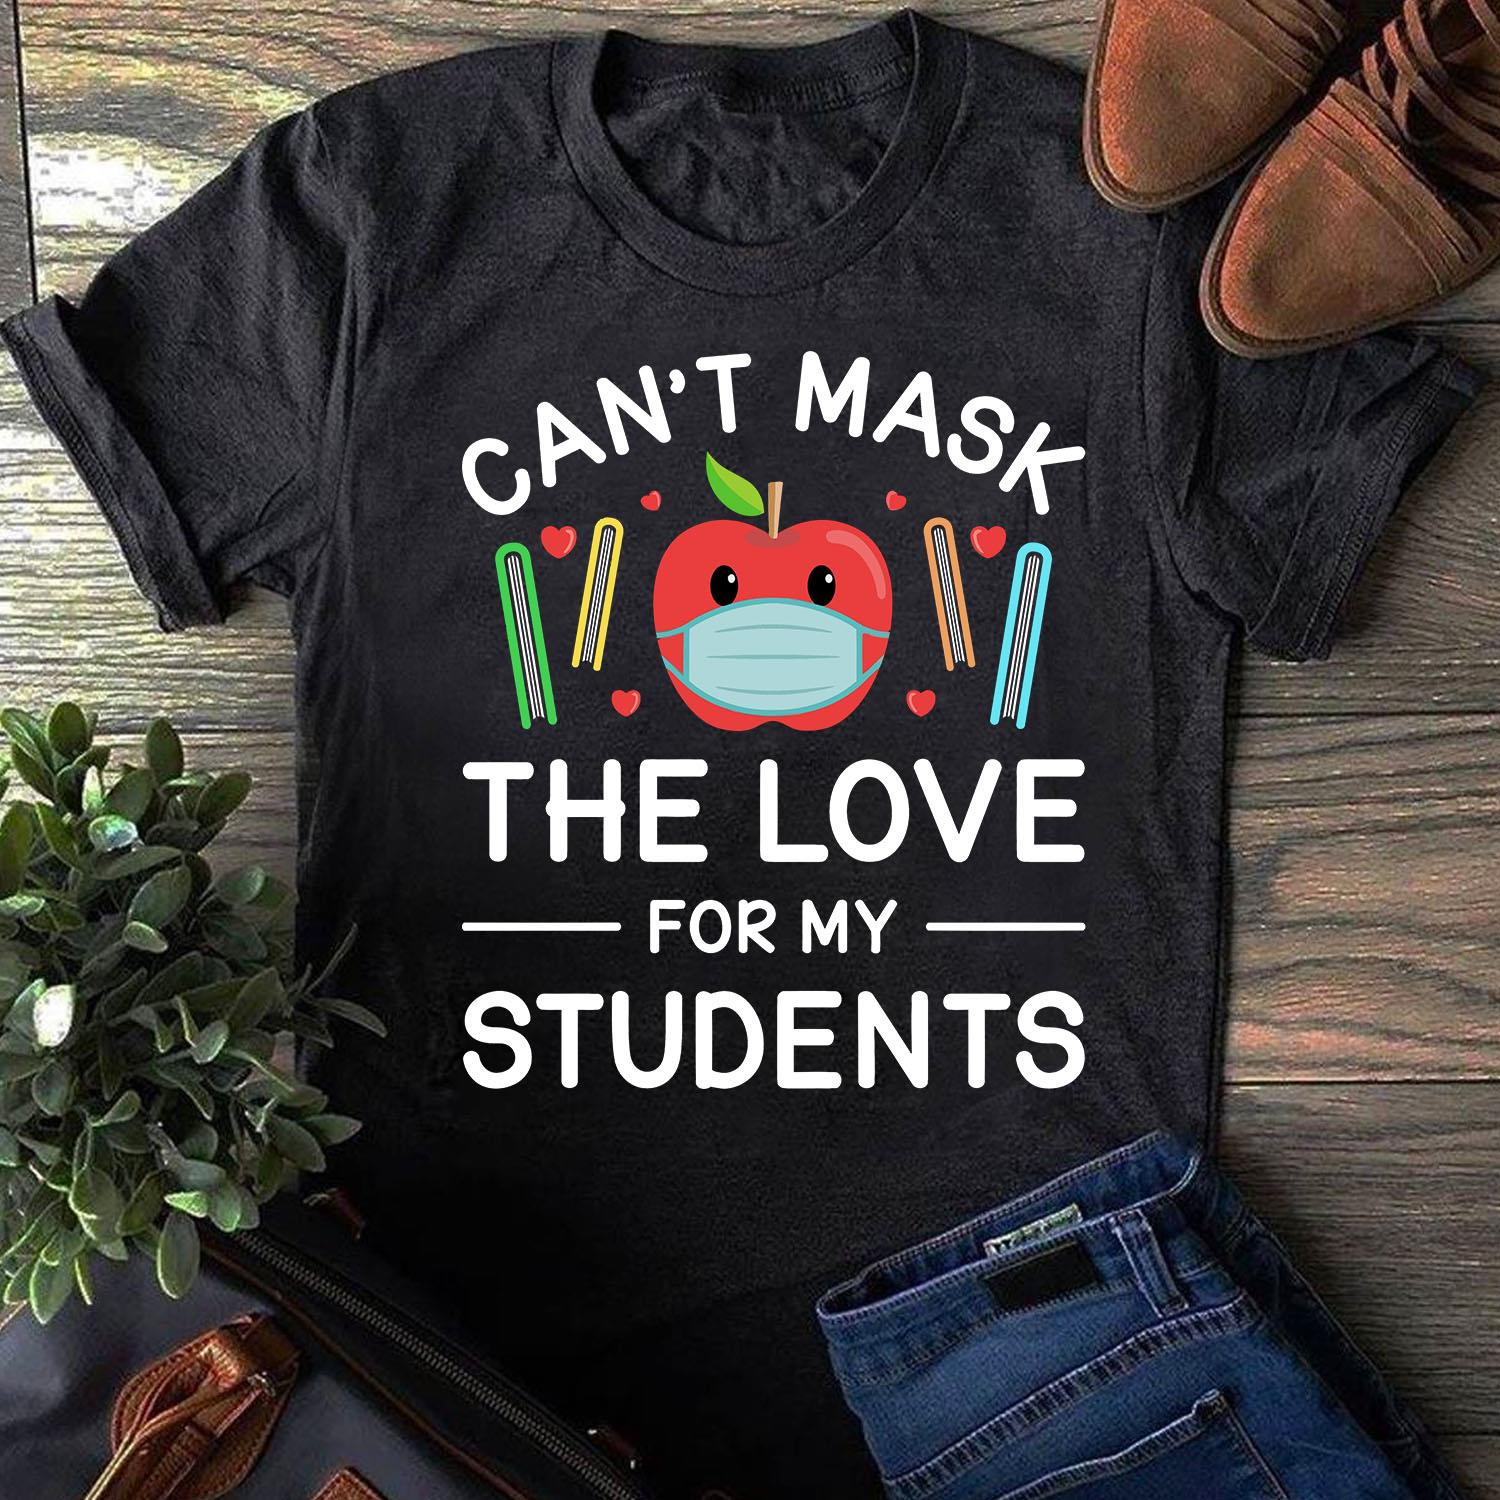 Can't Mask The Love For My Students Shirt